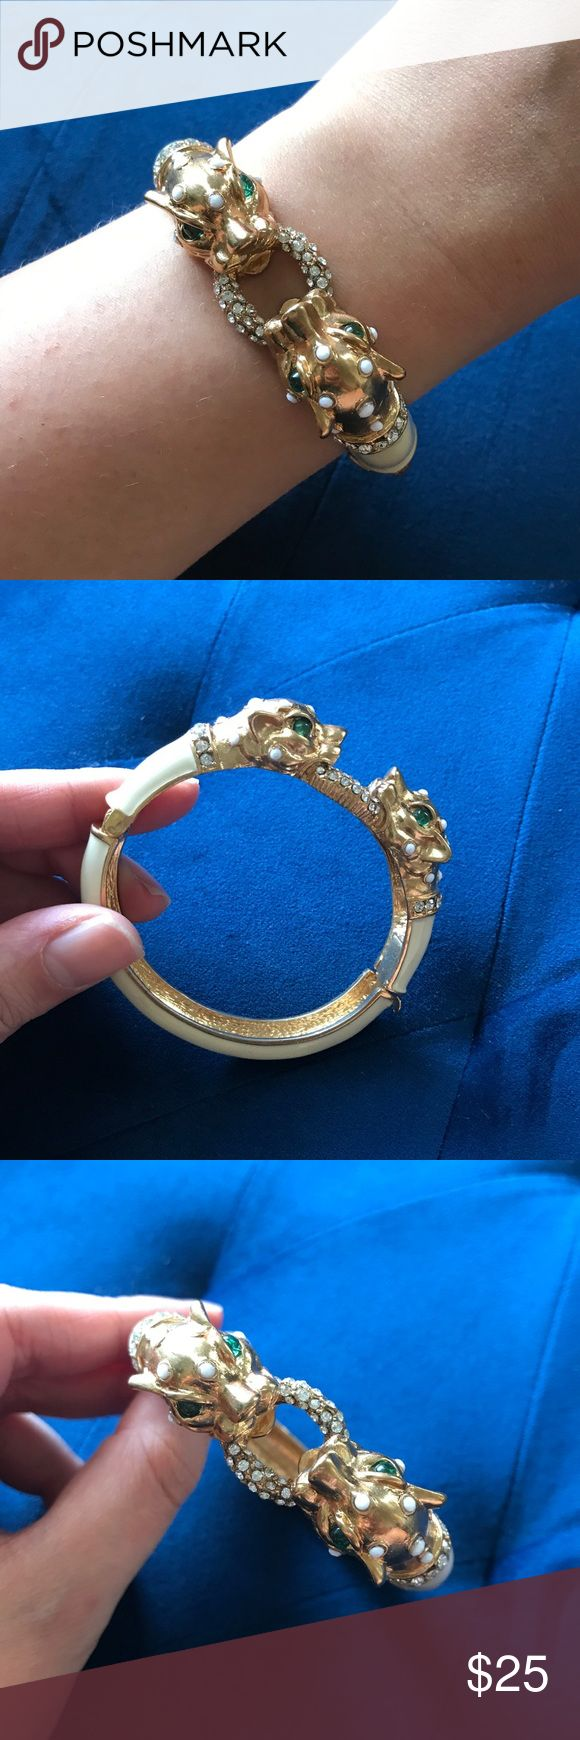 J.Crew Cat Bangle Bracelet Fun cat bangle bracelet from J.Crew. Cream enamel with white and green accents. Hinged clasp to make getting the bracelet on and off easy! Very good pre-loved condition. 🛍BUNDLES ALWAYS GET 20% OFF🛍❌NO TRADES❌NO LOWBALL OFFERS❌ J. Crew Jewelry Bracelets